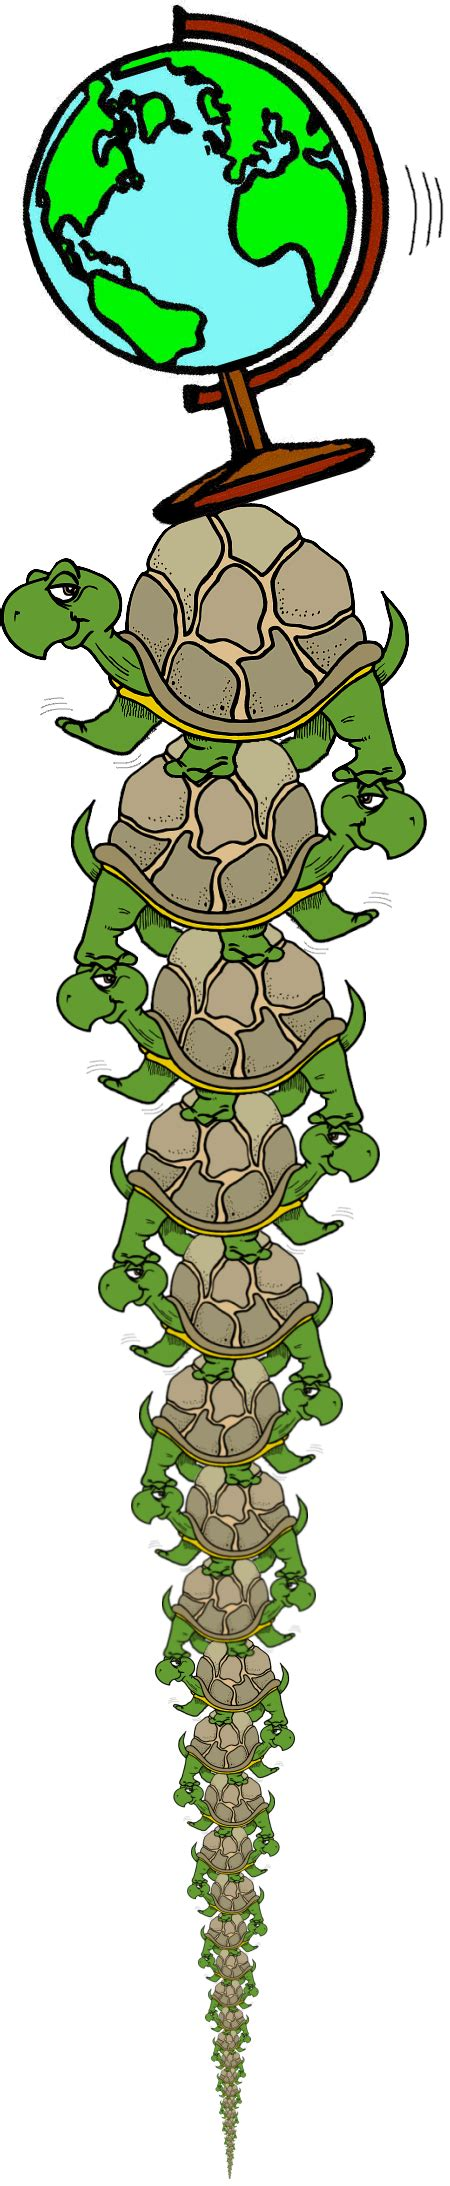 turtles all the way numberplay turtles all the way down the new york times